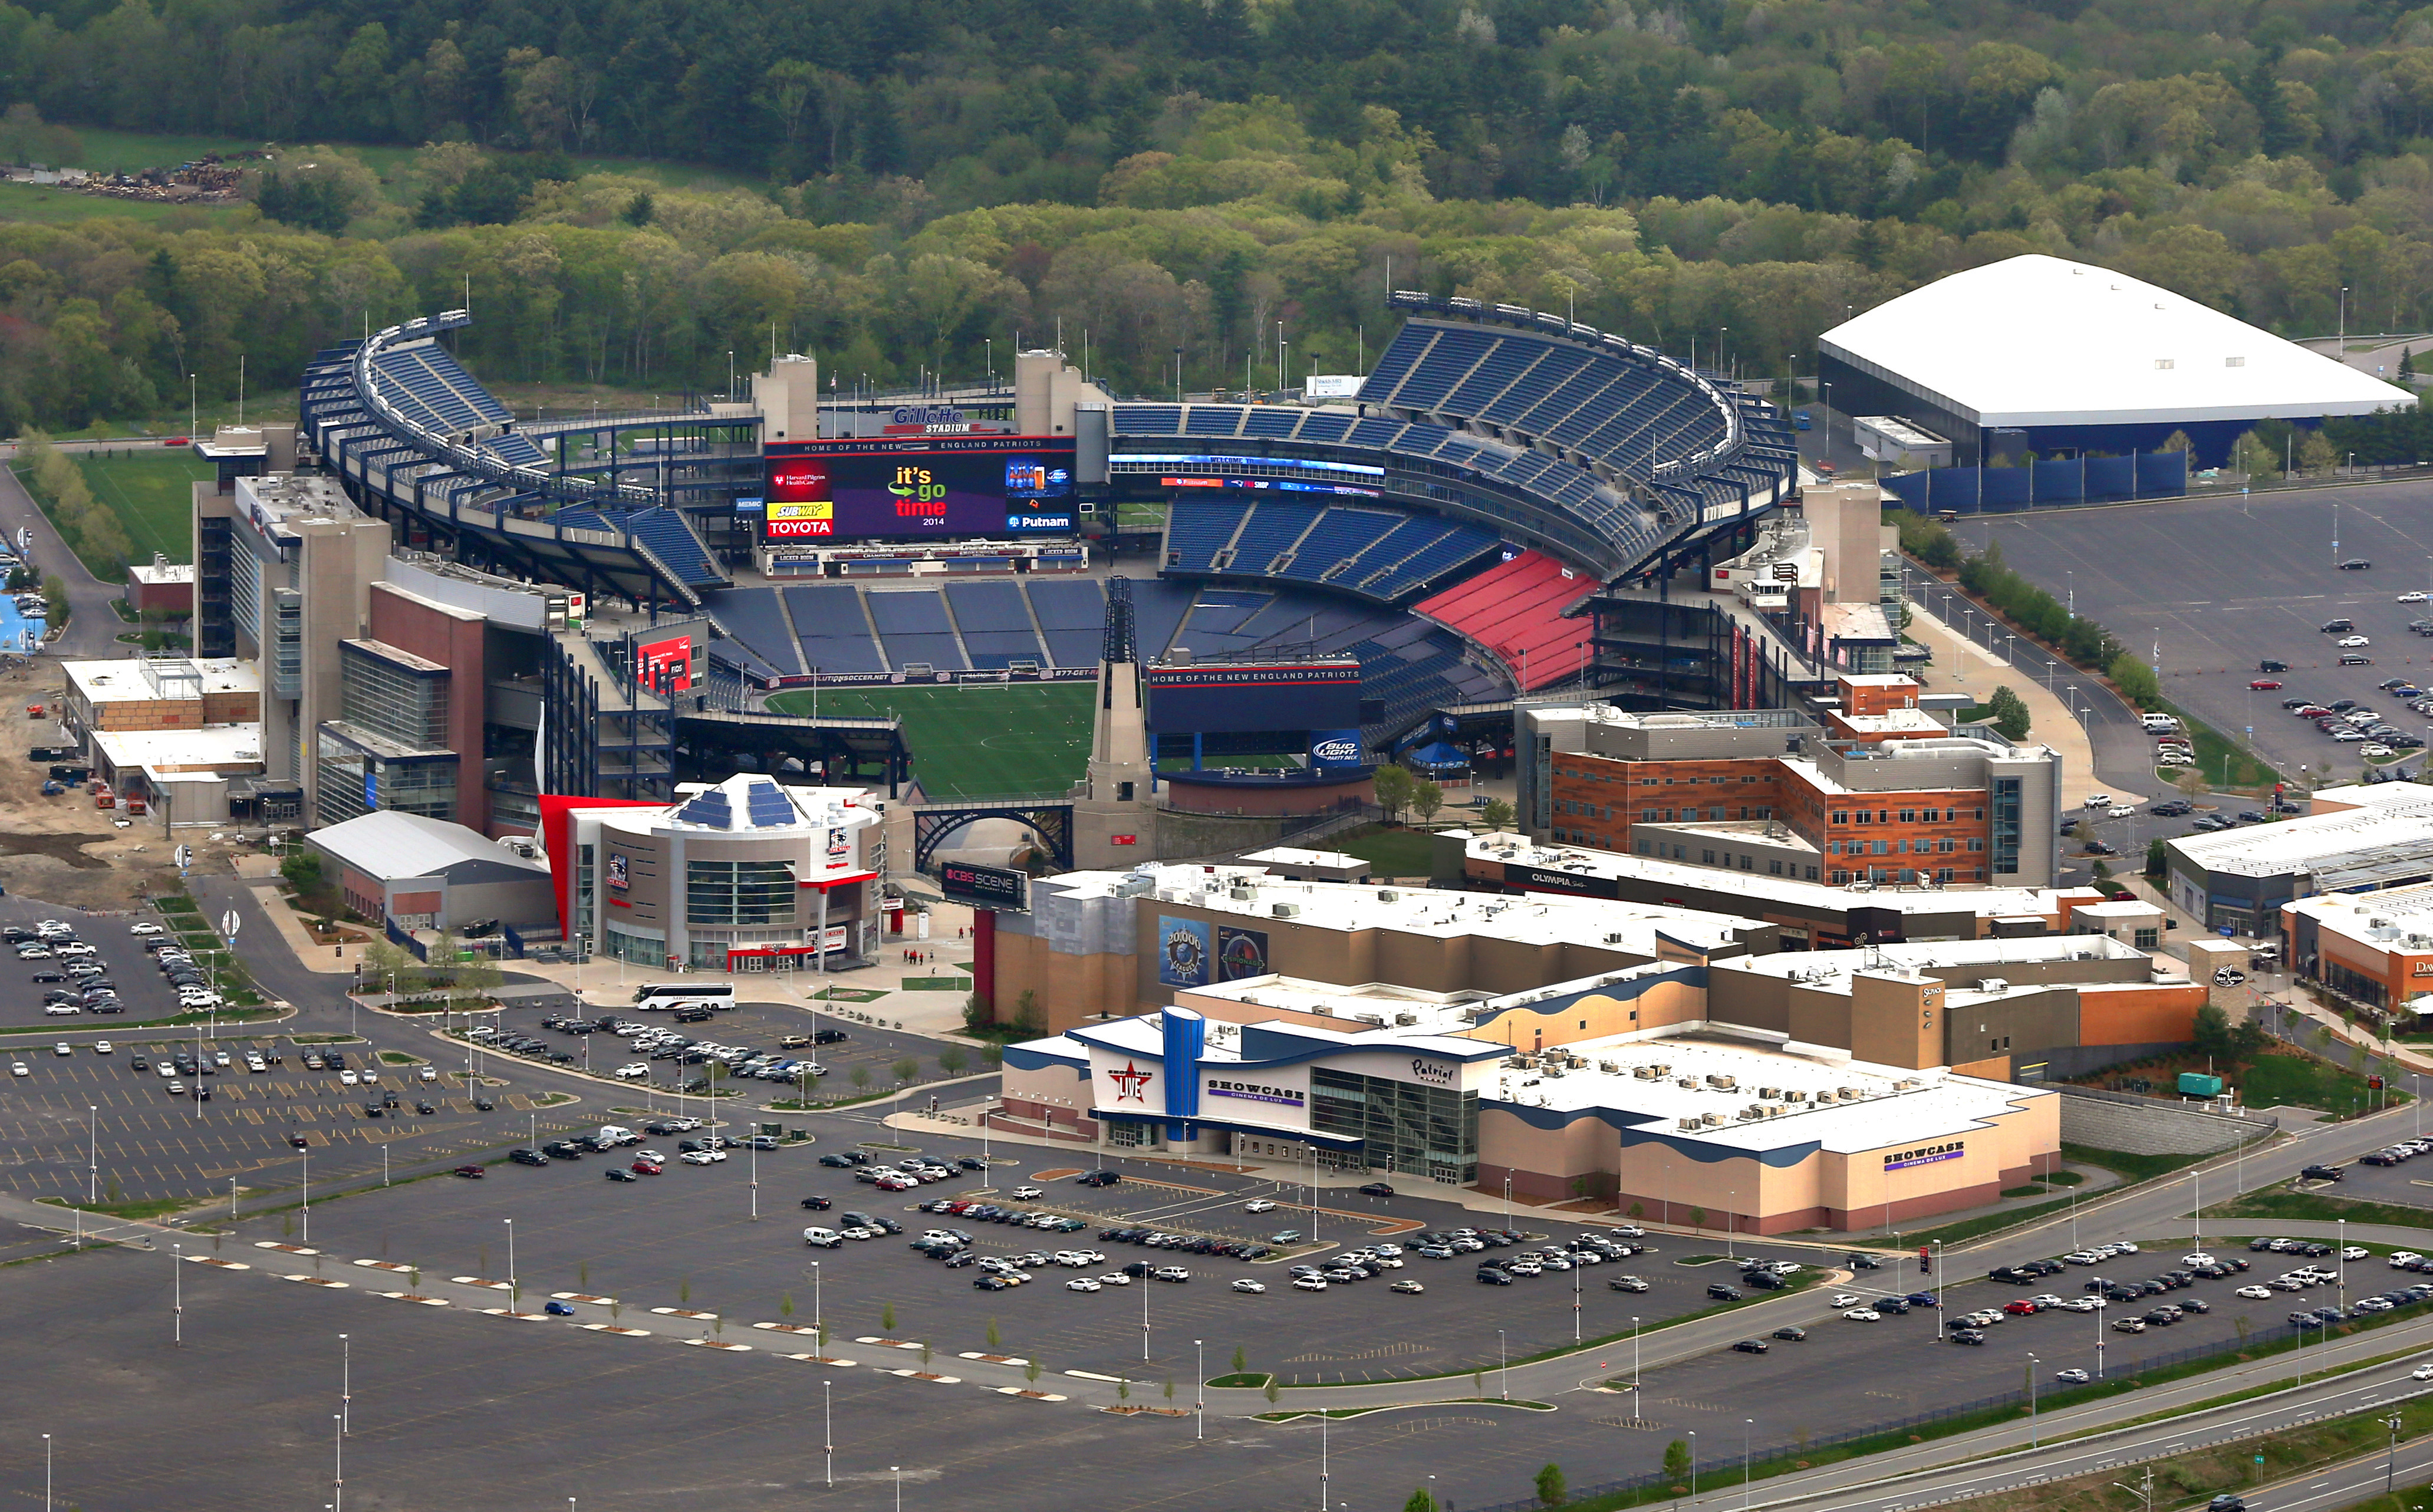 An aerial shot of a football stadium and the shopping complex next to it.